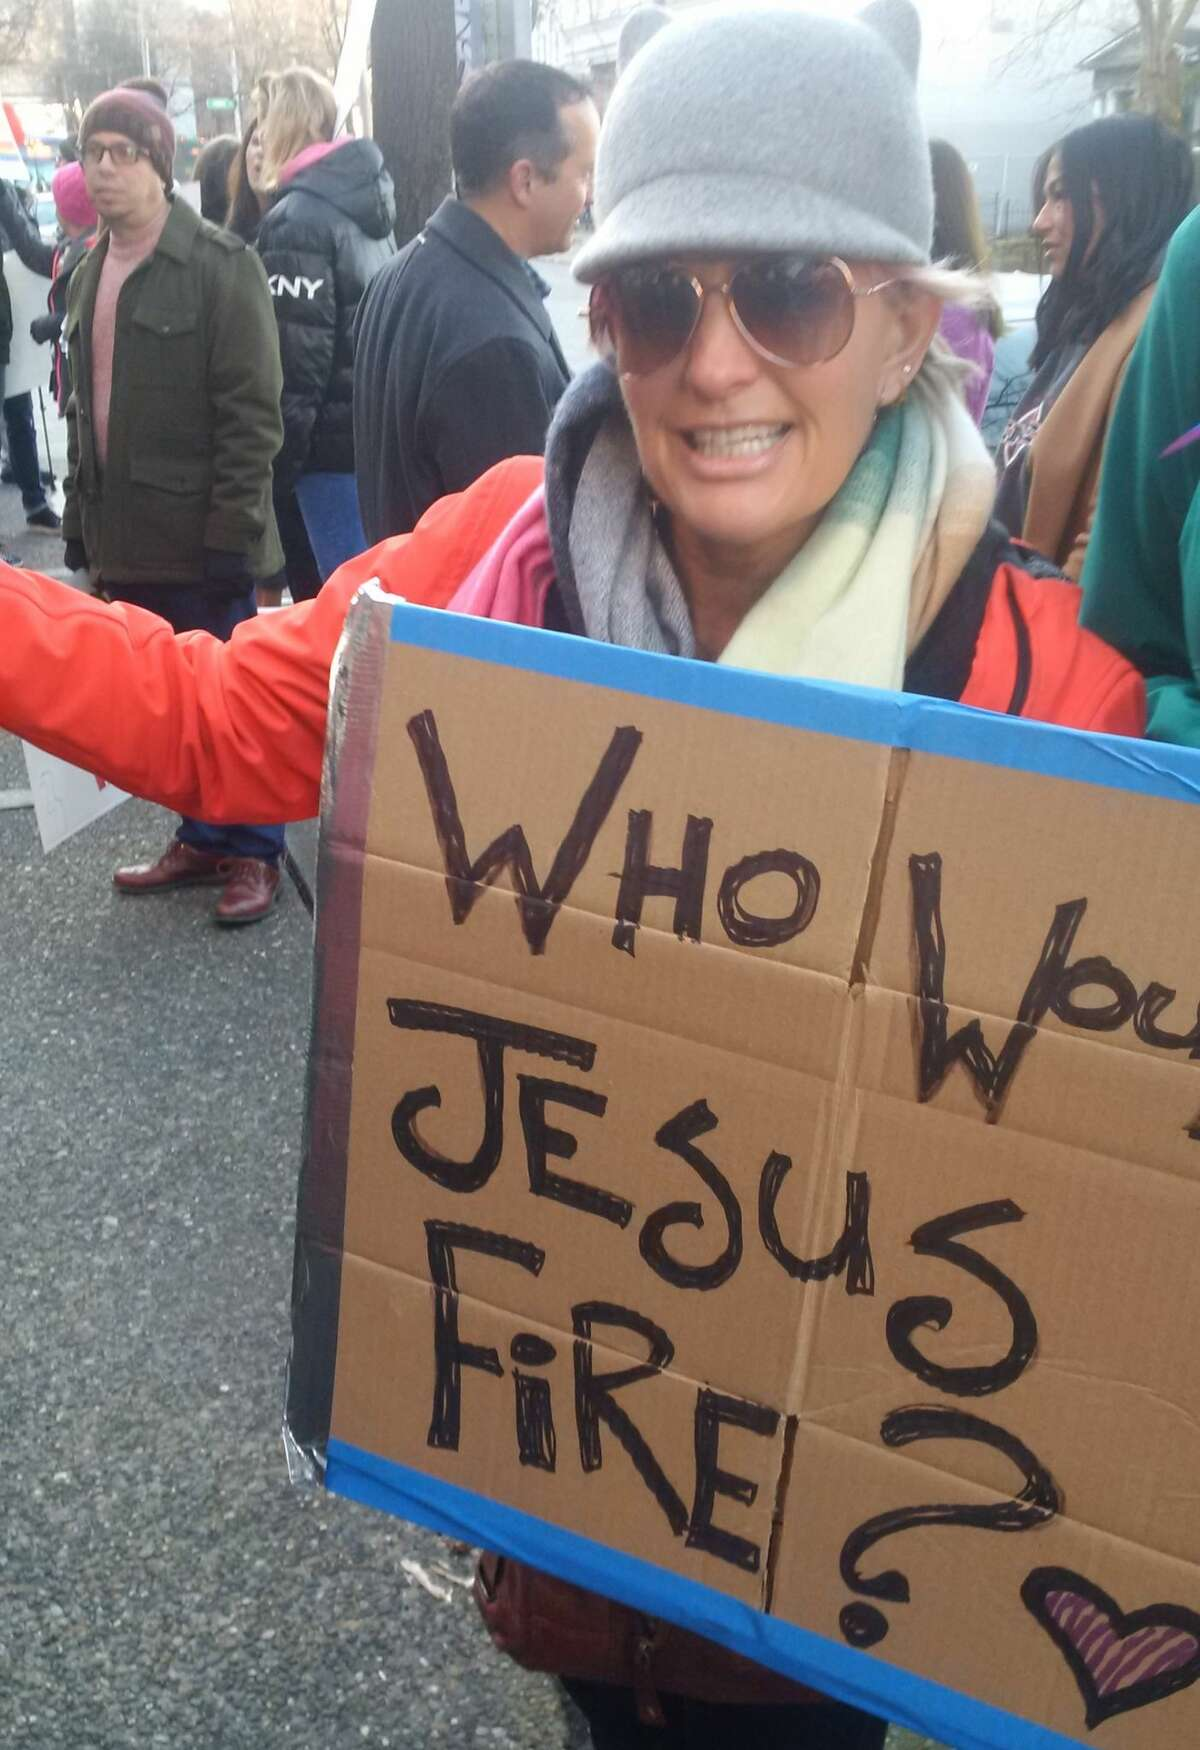 Protest at the Catholic Archdiocese of Seattle on Feb. 18.